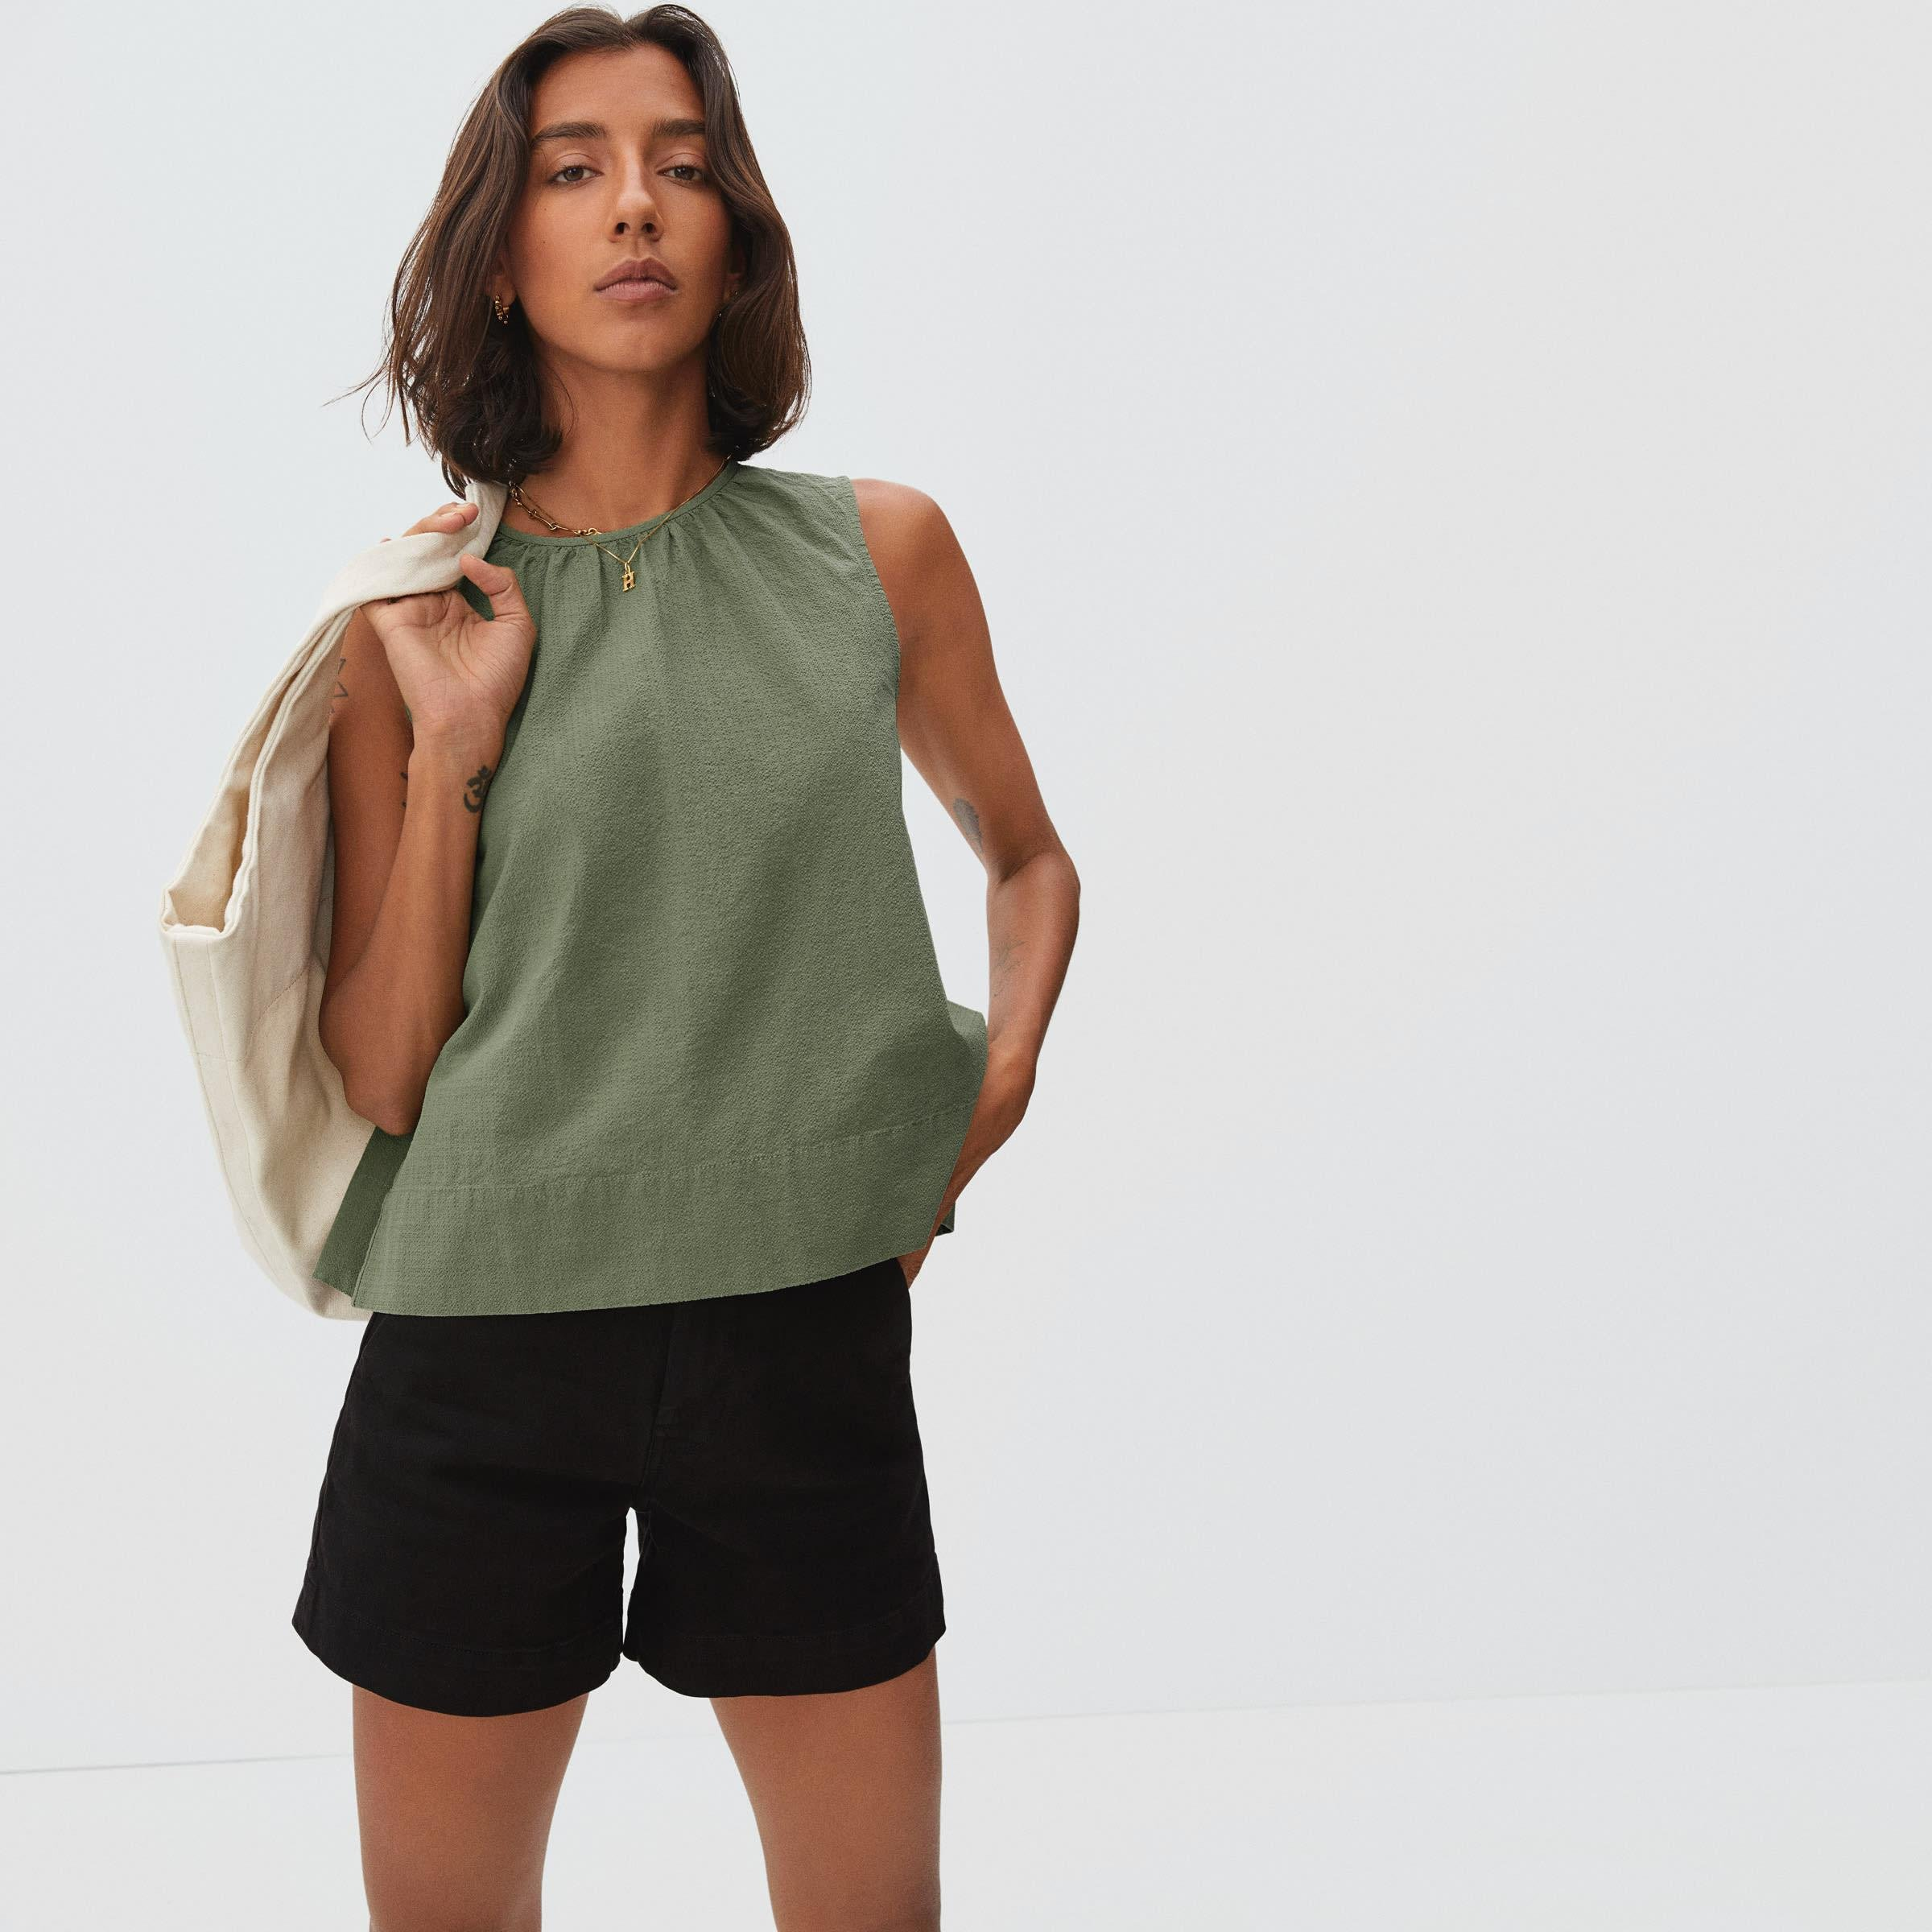 The Tie-Back Top